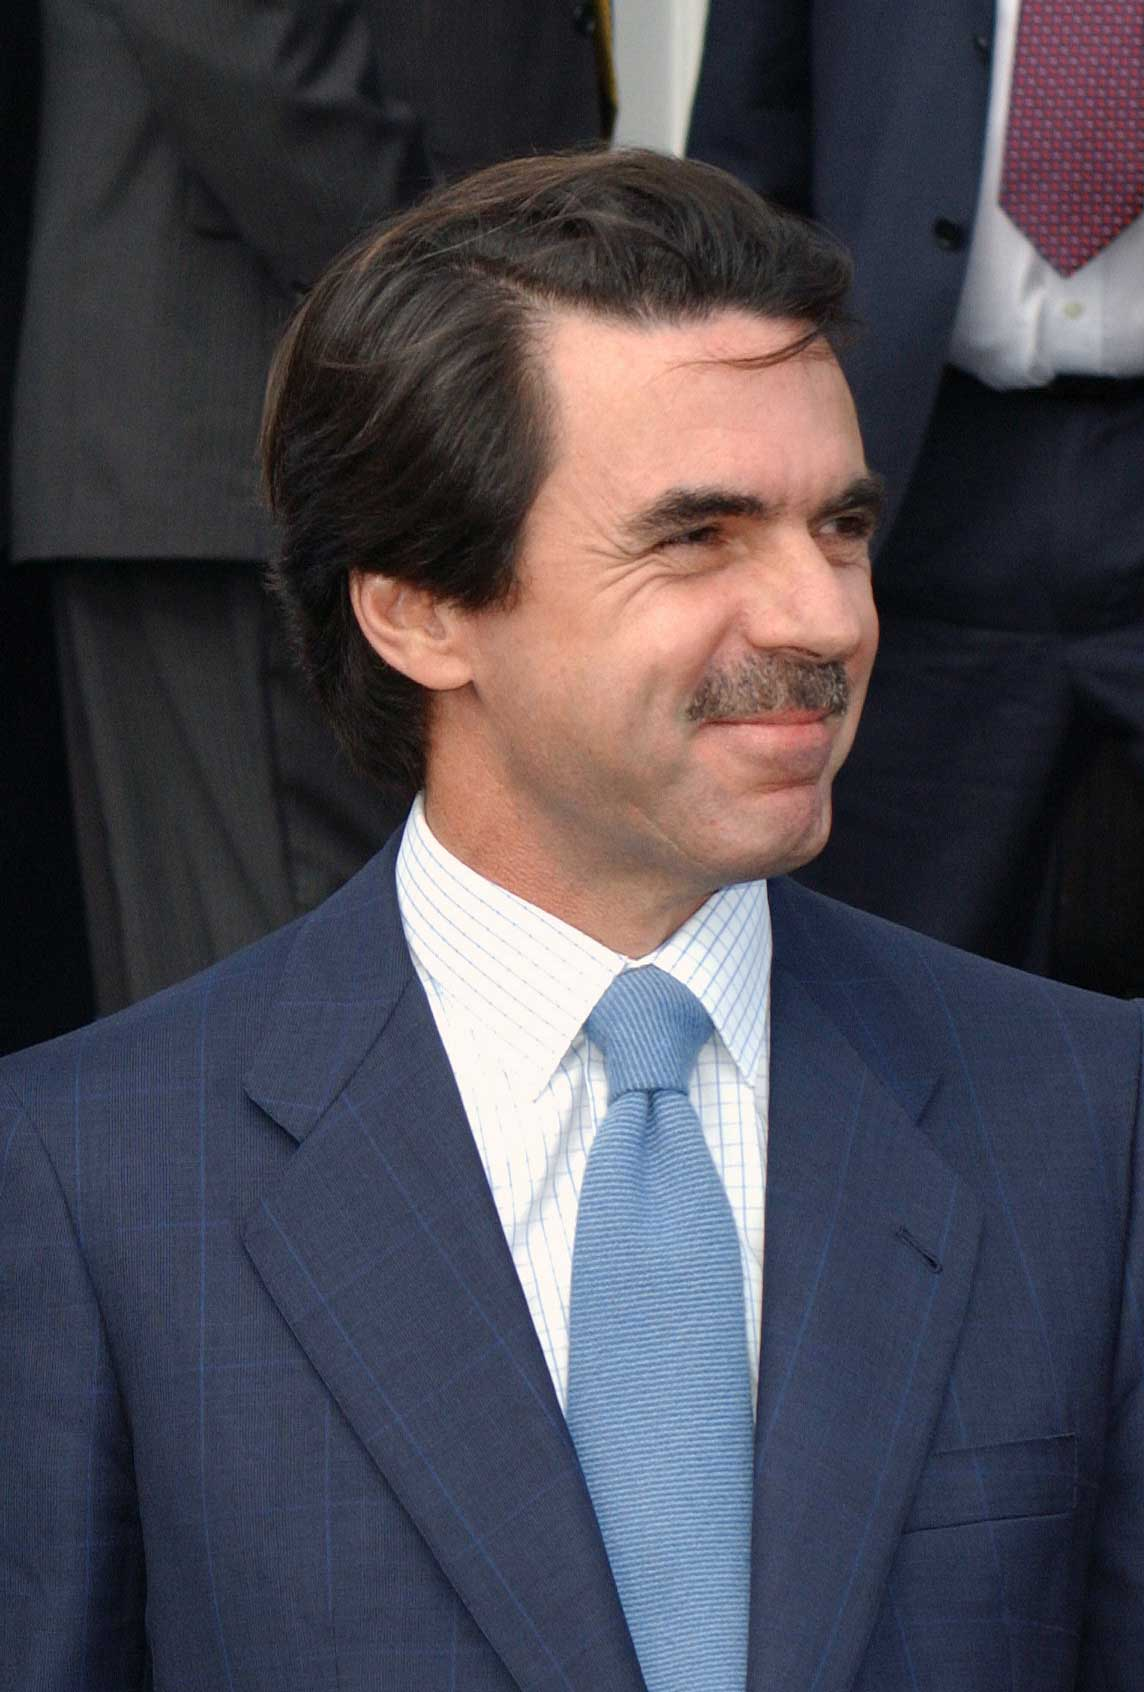 http://upload.wikimedia.org/wikipedia/commons/a/a4/Jose_Maria_Aznar_DF-SD-05-00920.jpg